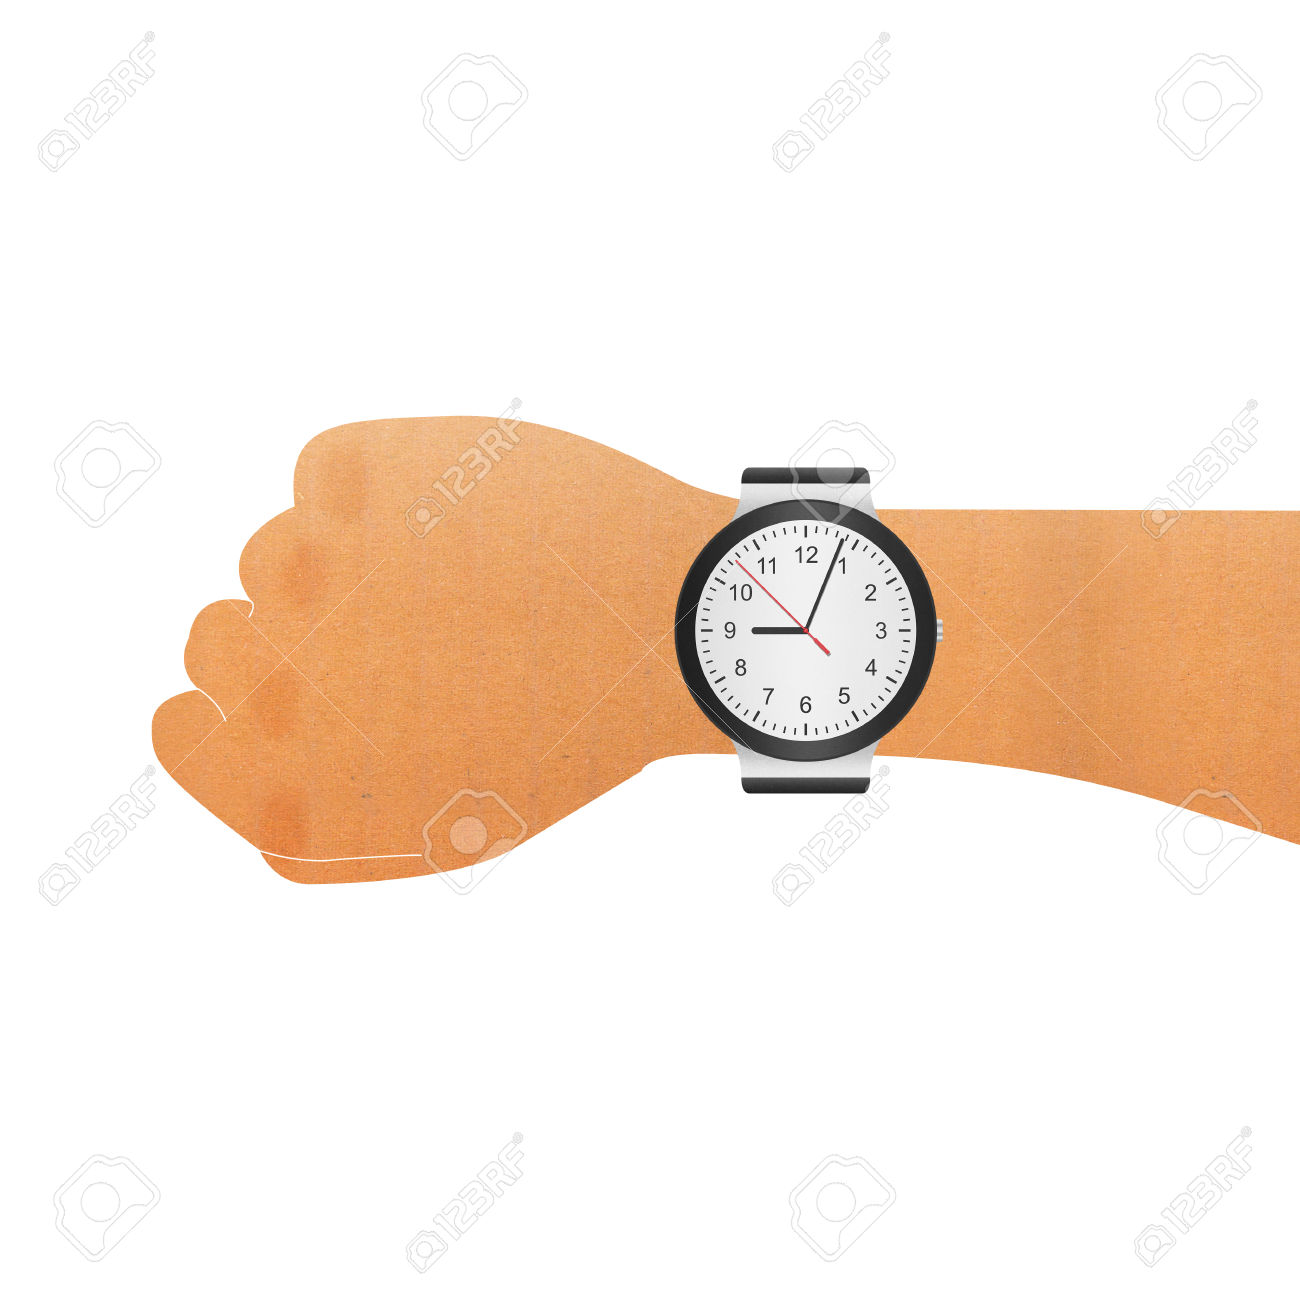 Checking Watch Clipart.